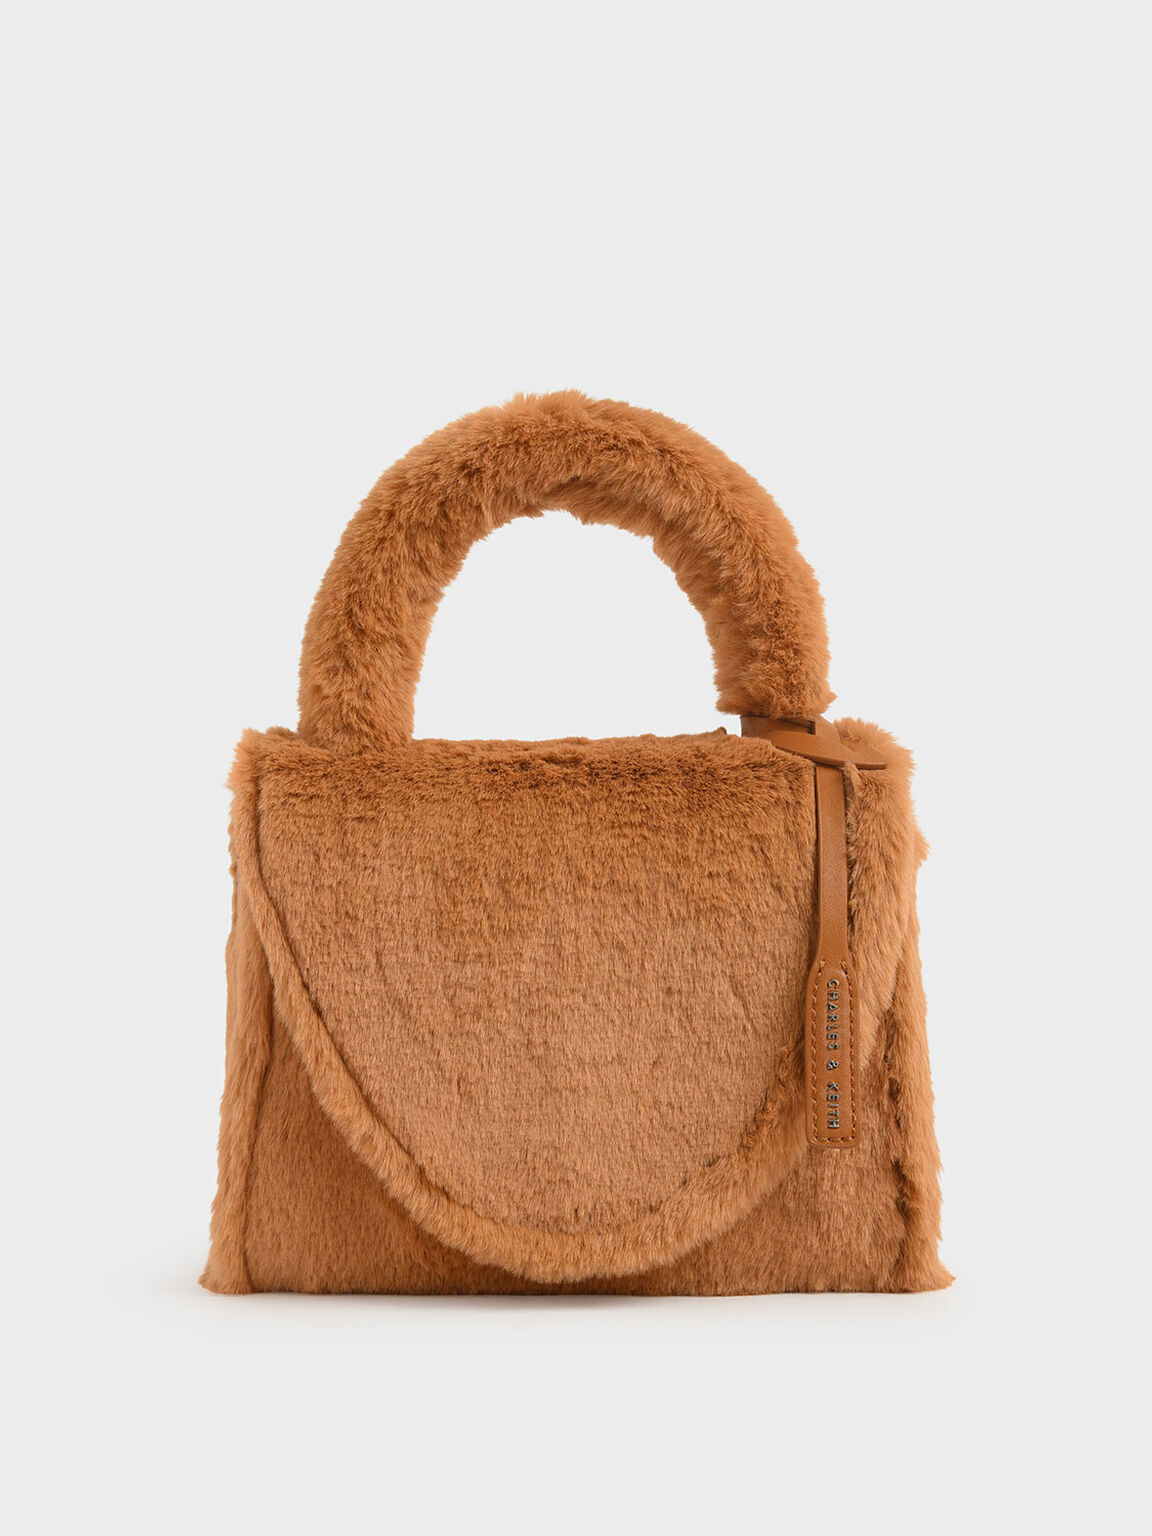 Textured Structured Bag, Tan, hi-res